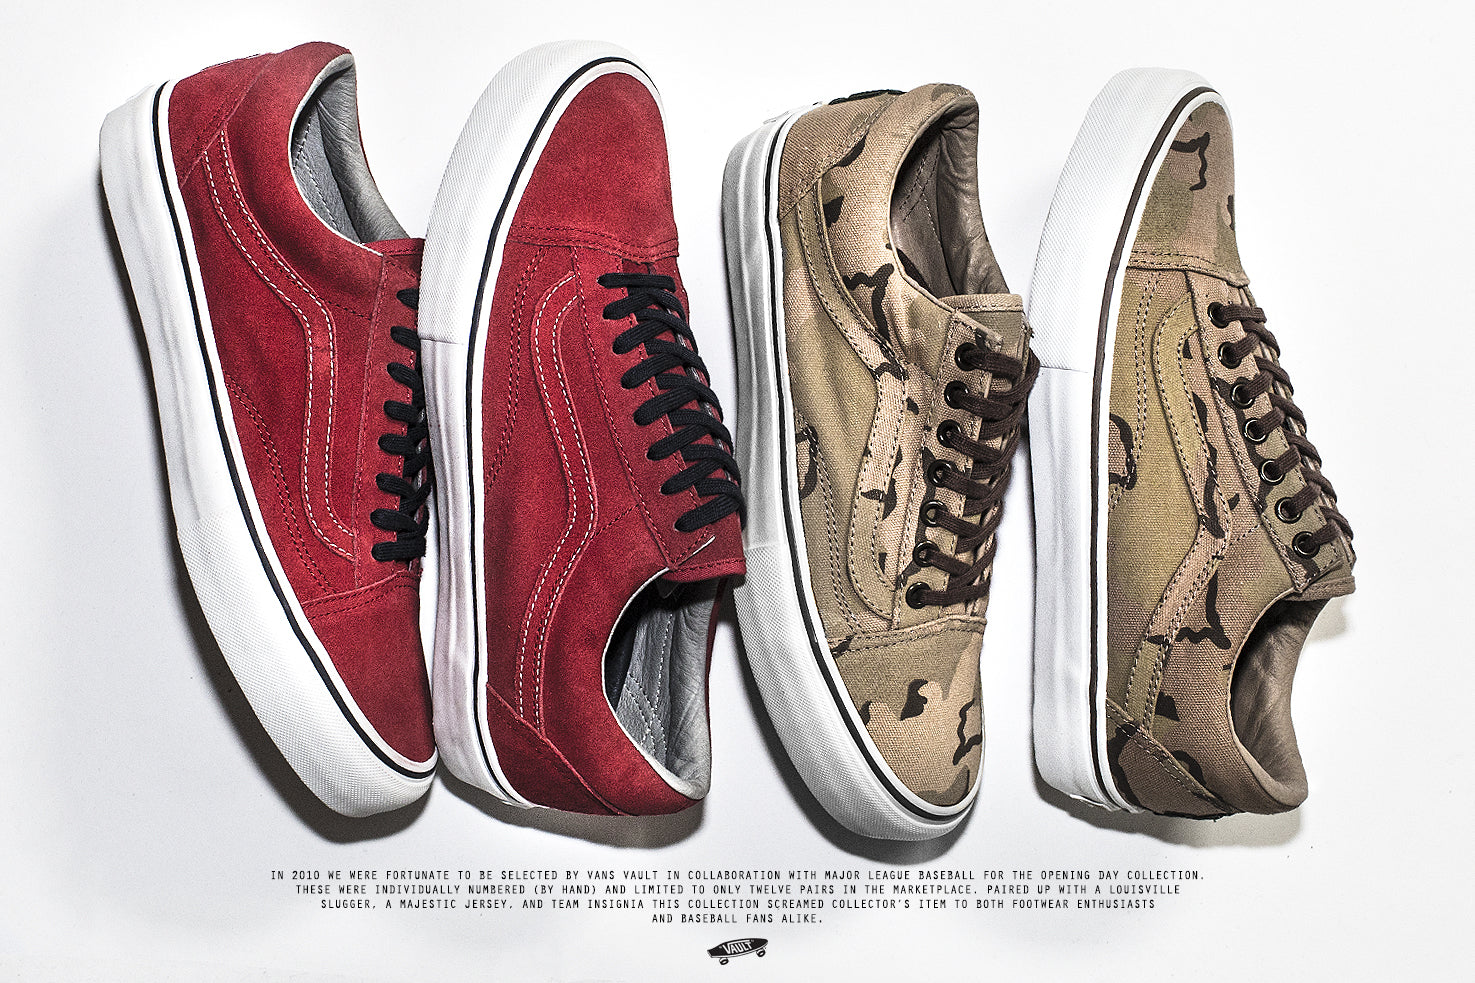 Vans Vault x MLB x Blends Opening Day Collection